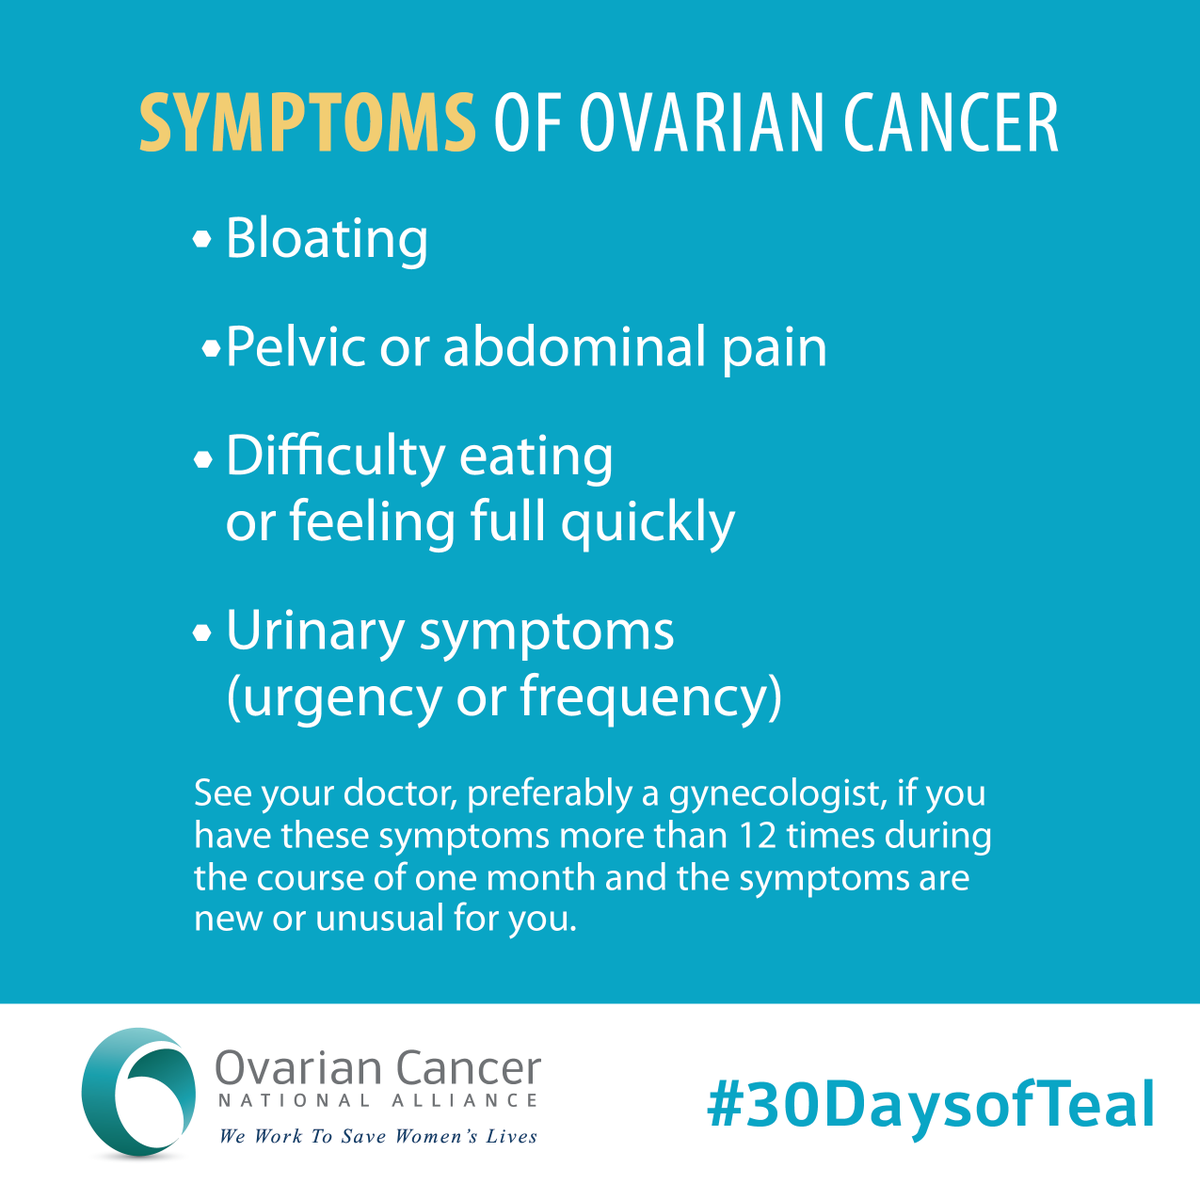 Help tell 100,000 women abt the symptoms of ovarian cancer! Share this graphic! #30DaysofTeal http://t.co/pE3vf6dVZ5 http://t.co/KdoUFloENR